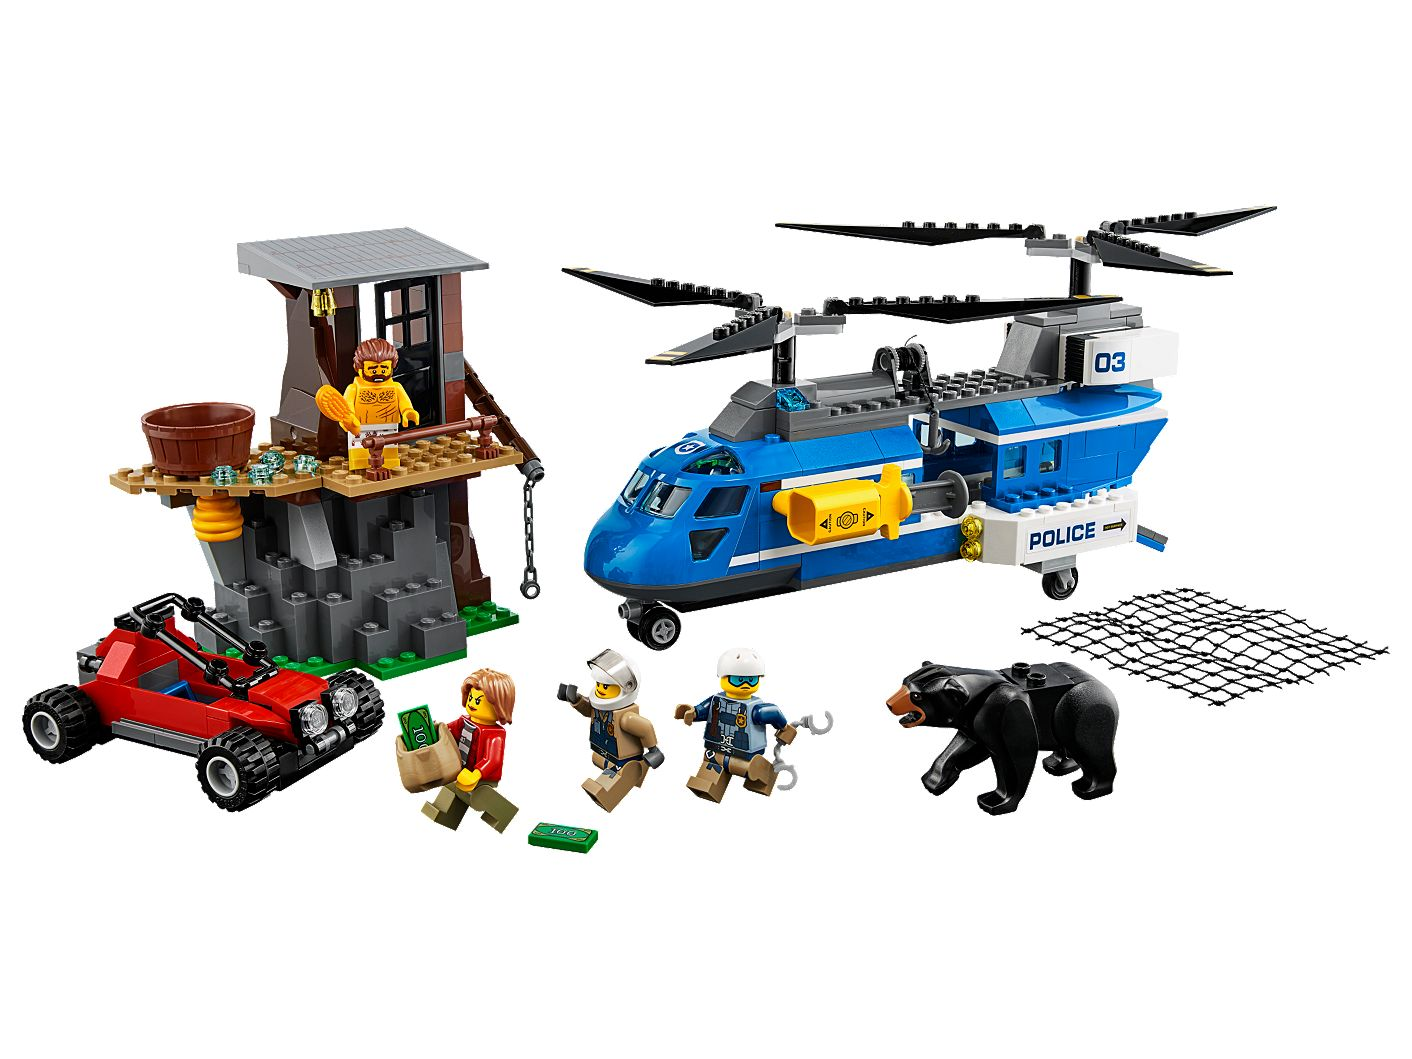 Mountain Arrest 60173 | City | Buy online at the Official LEGO® Shop US